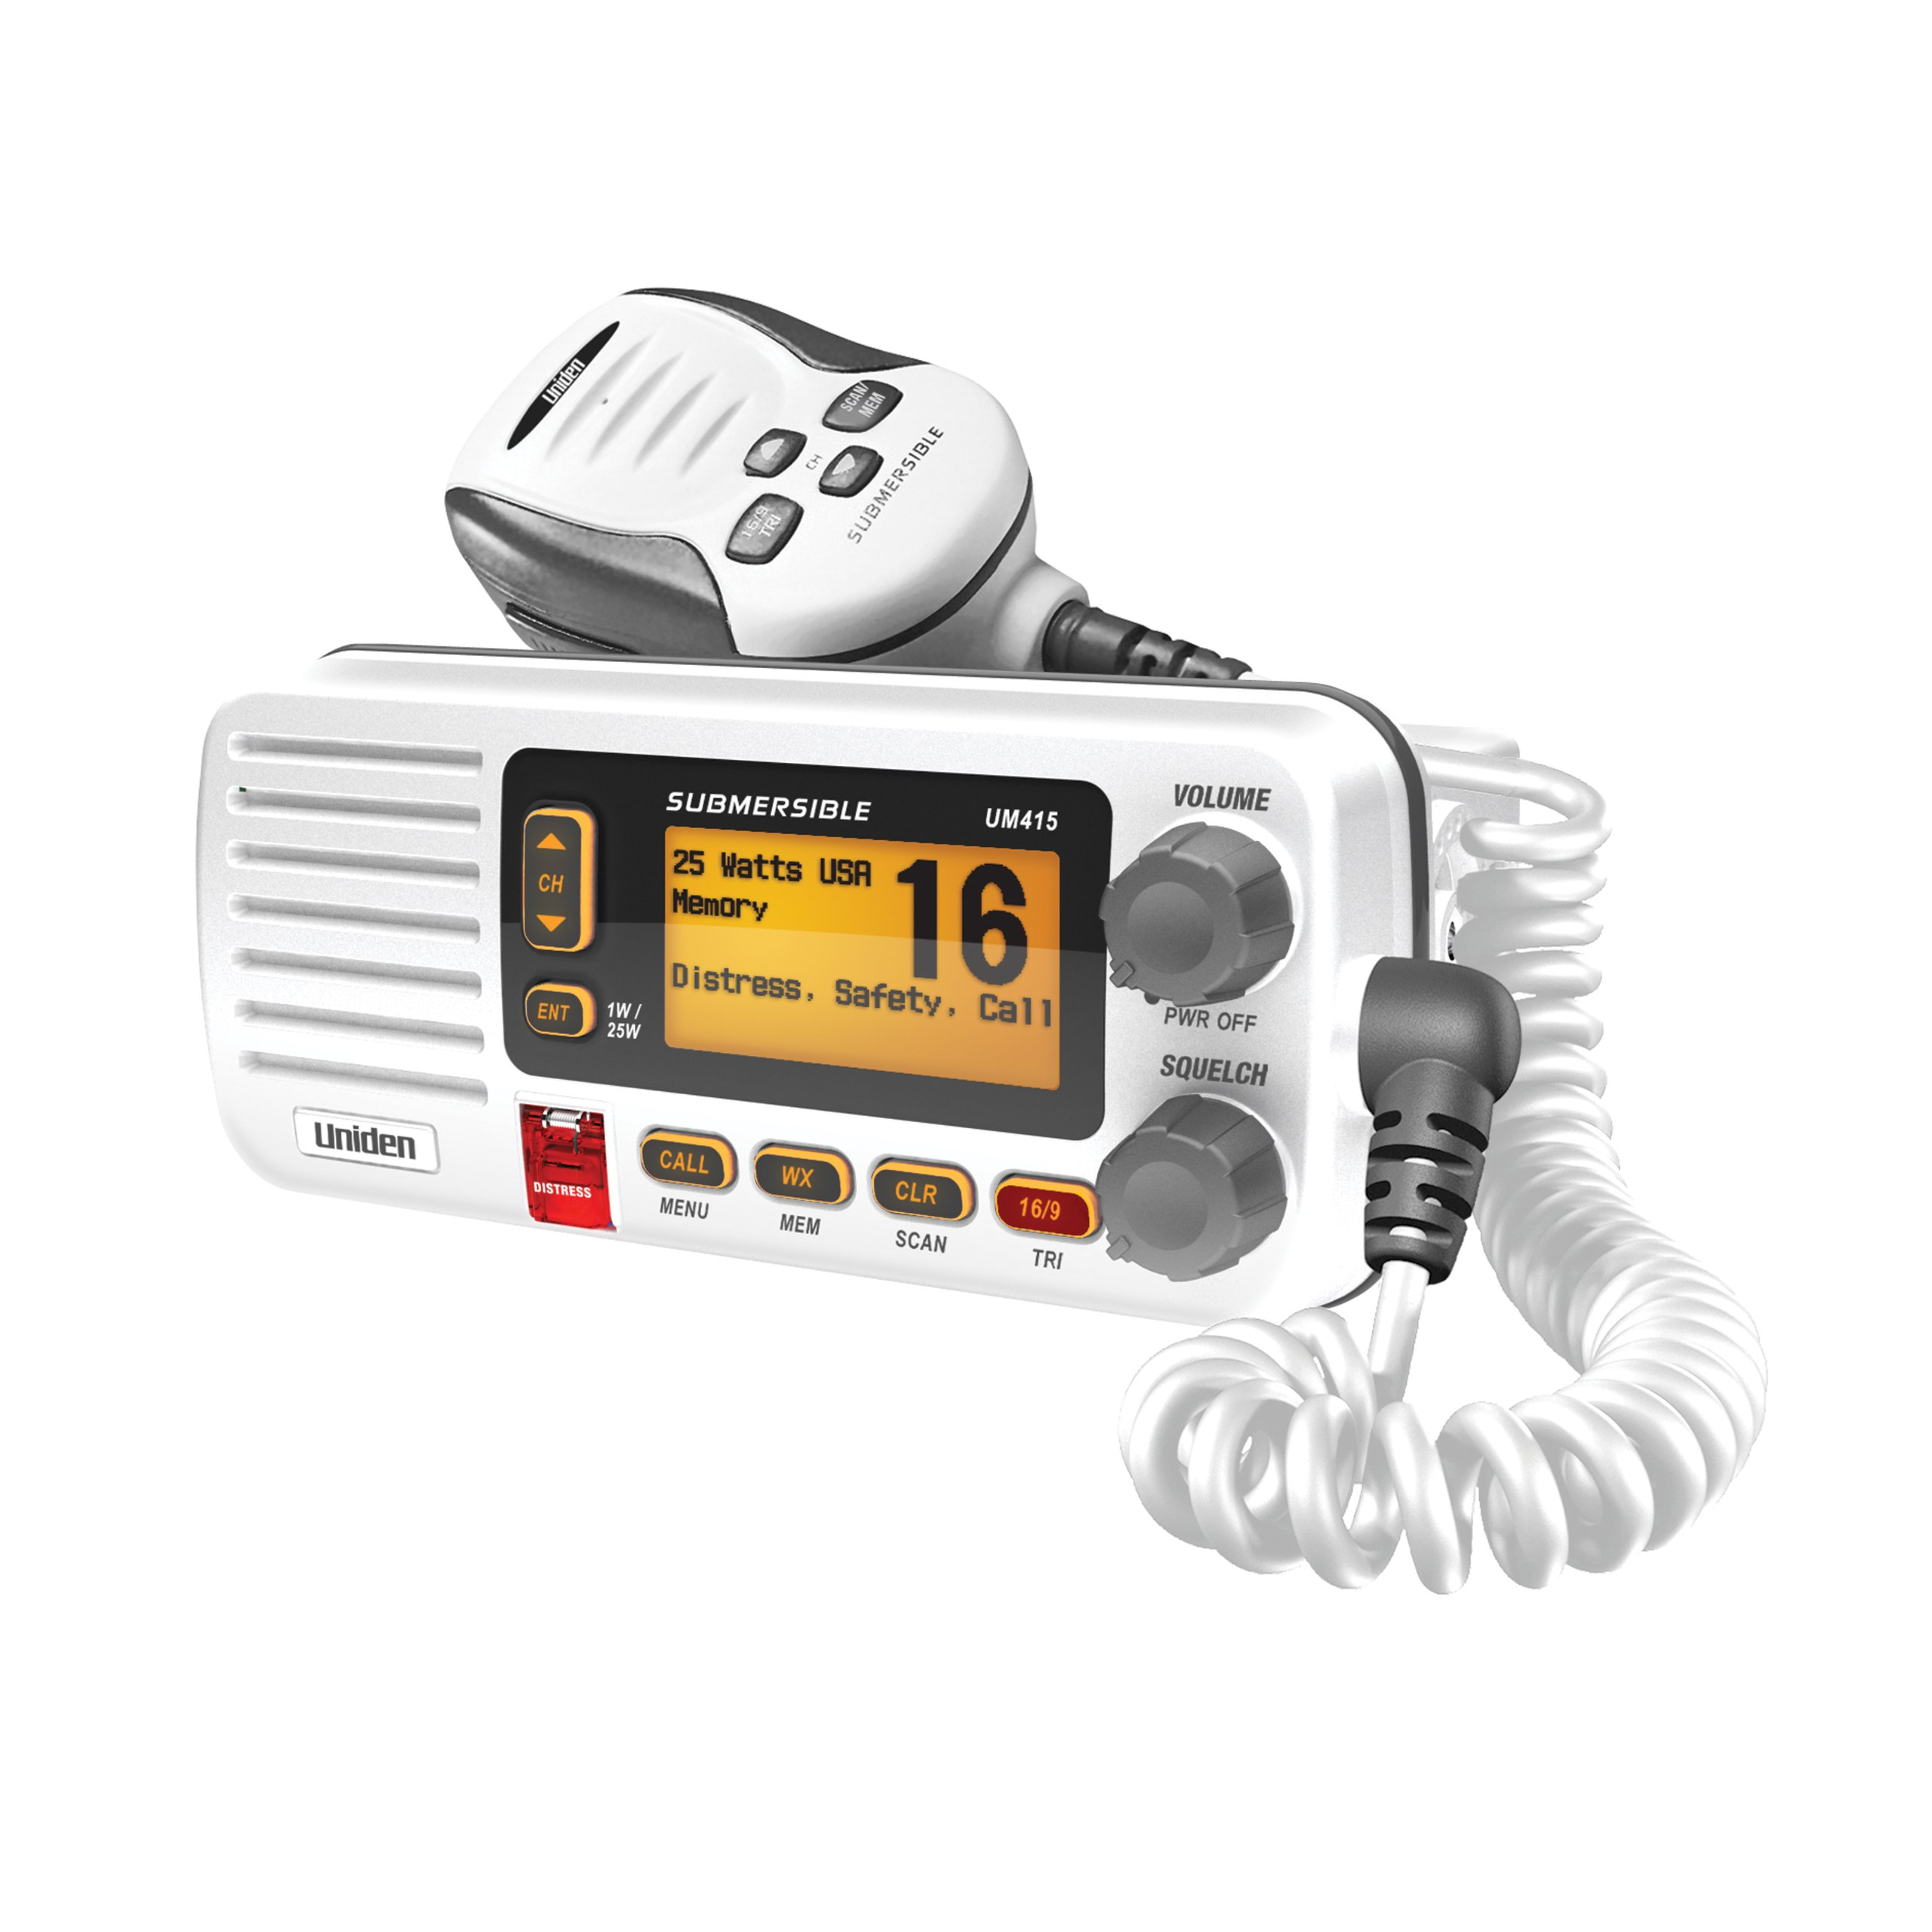 Uniden UM415 Advanced Fixed Mount VHF Marine Radio DSC (Digital Selective Calling). All USA/International/Canadian Marine Channels. 1 Watt/25 Watt Transmit Power. Ultra Compact Rugged Construction and JIS7 Submersible - White Color